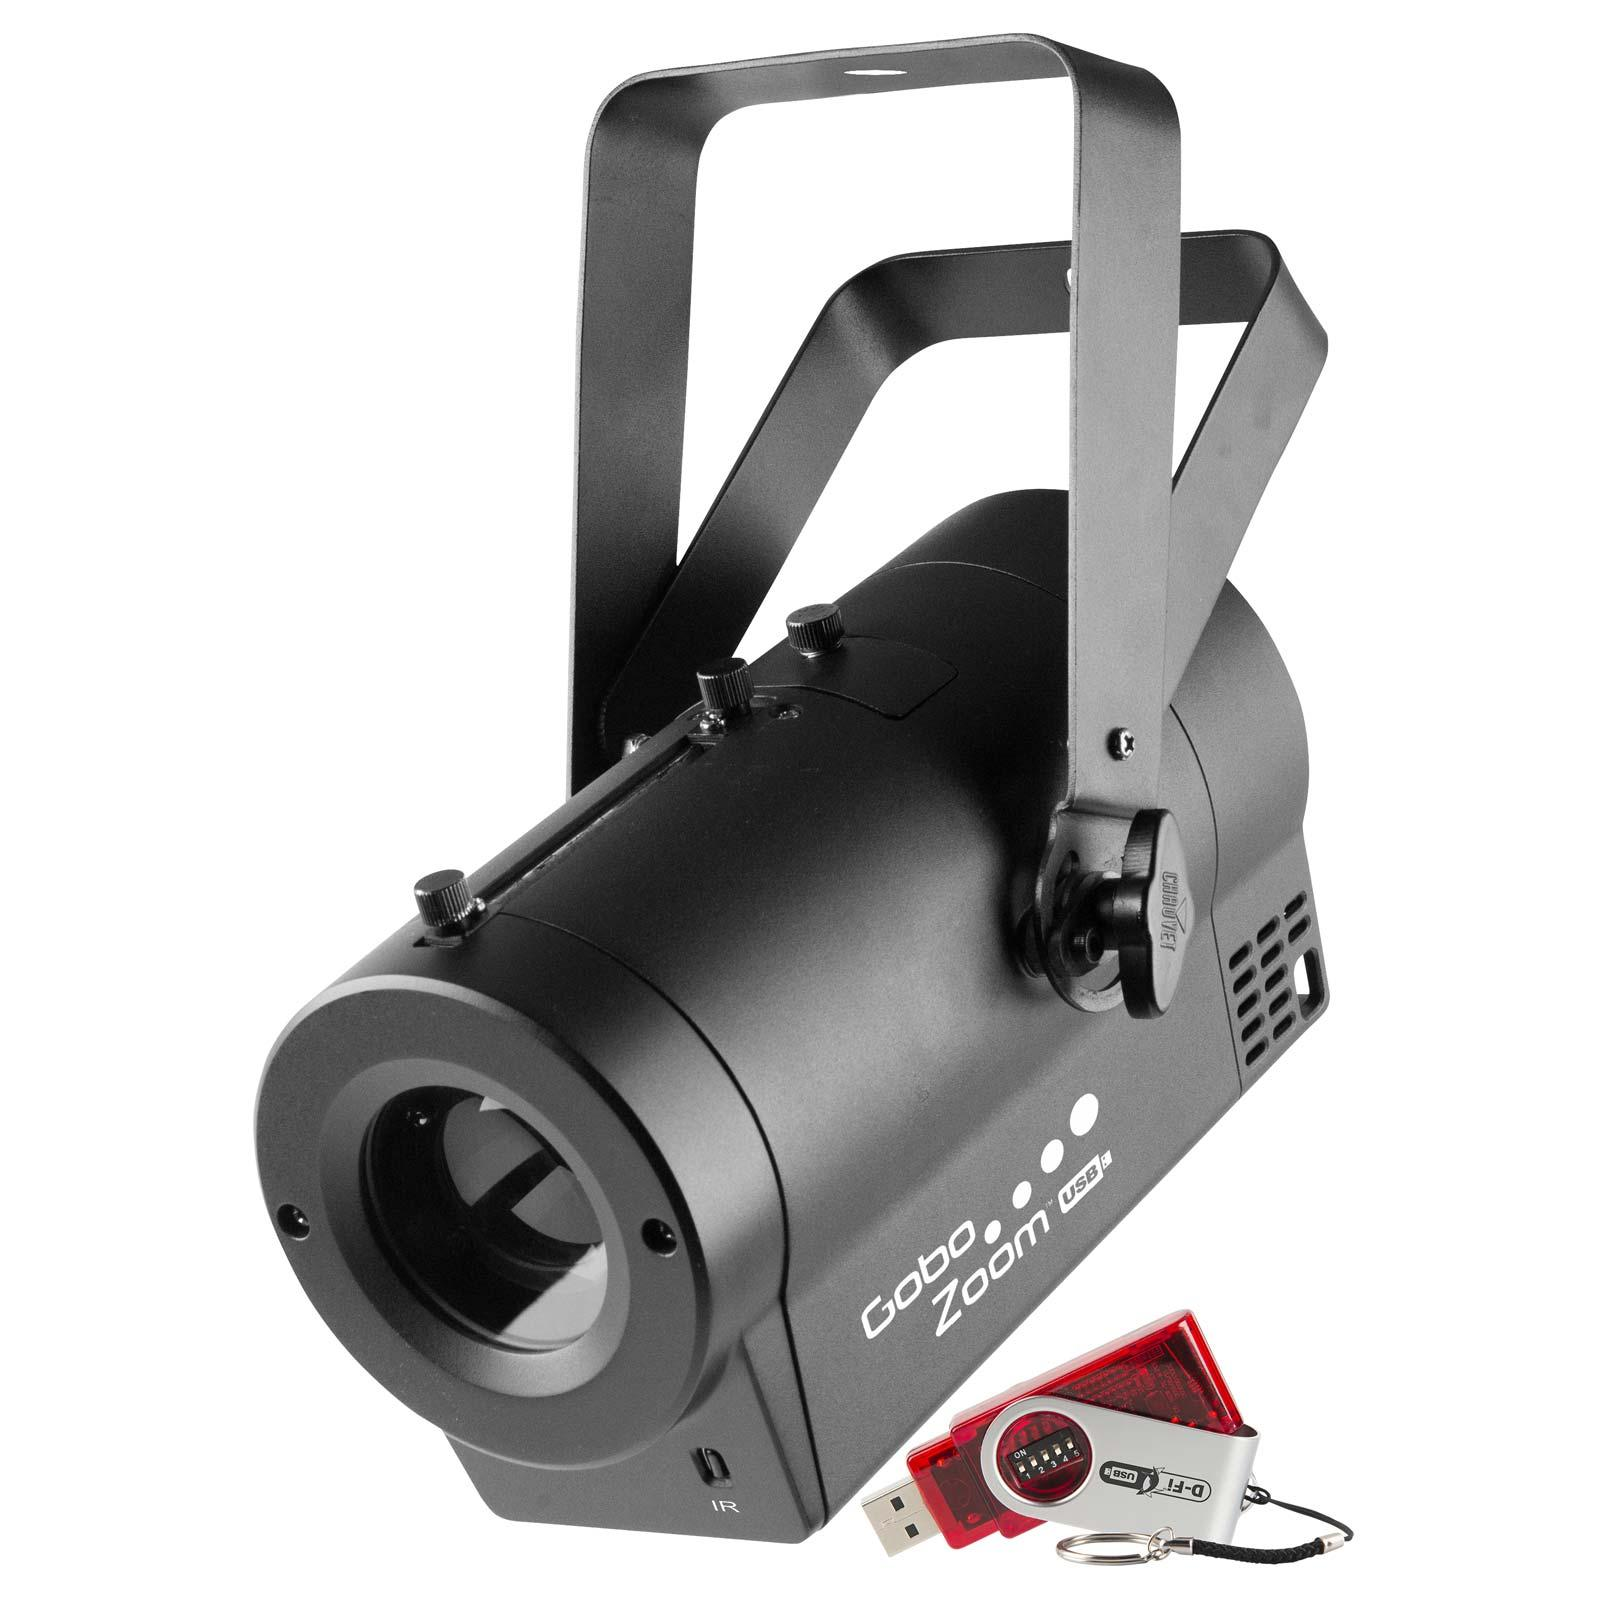 Chauvet dj gobo zoom usb compact wireless dmx led gobo for Compact projector